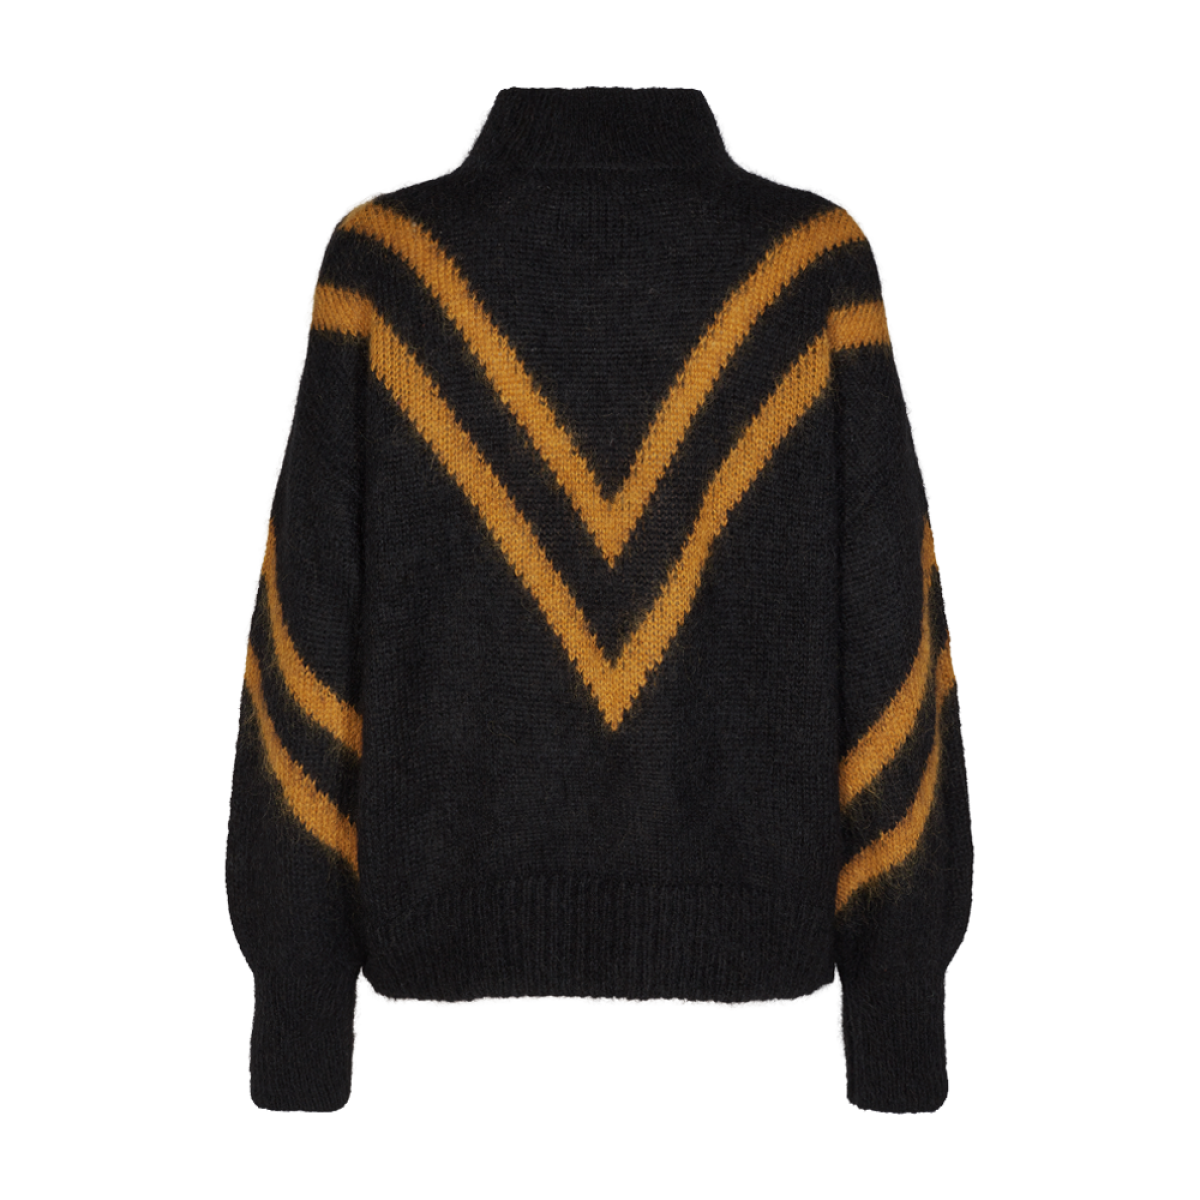 CphMuse121135MelodyPullover-32